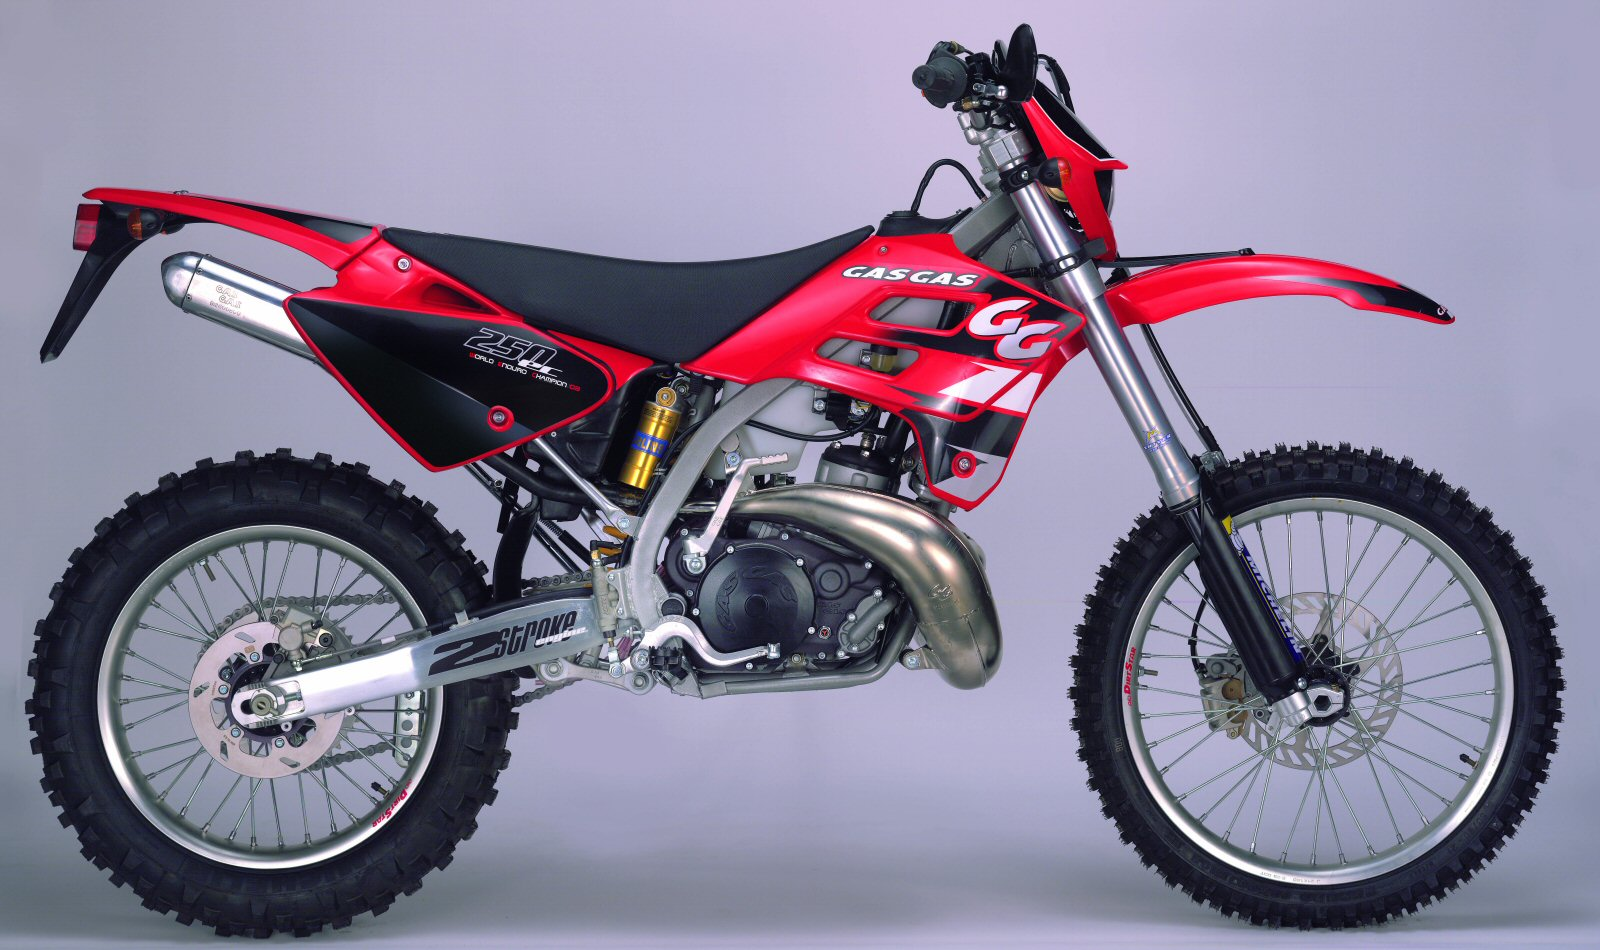 gas gas ec 250 2004 motorcycles specifications. Black Bedroom Furniture Sets. Home Design Ideas